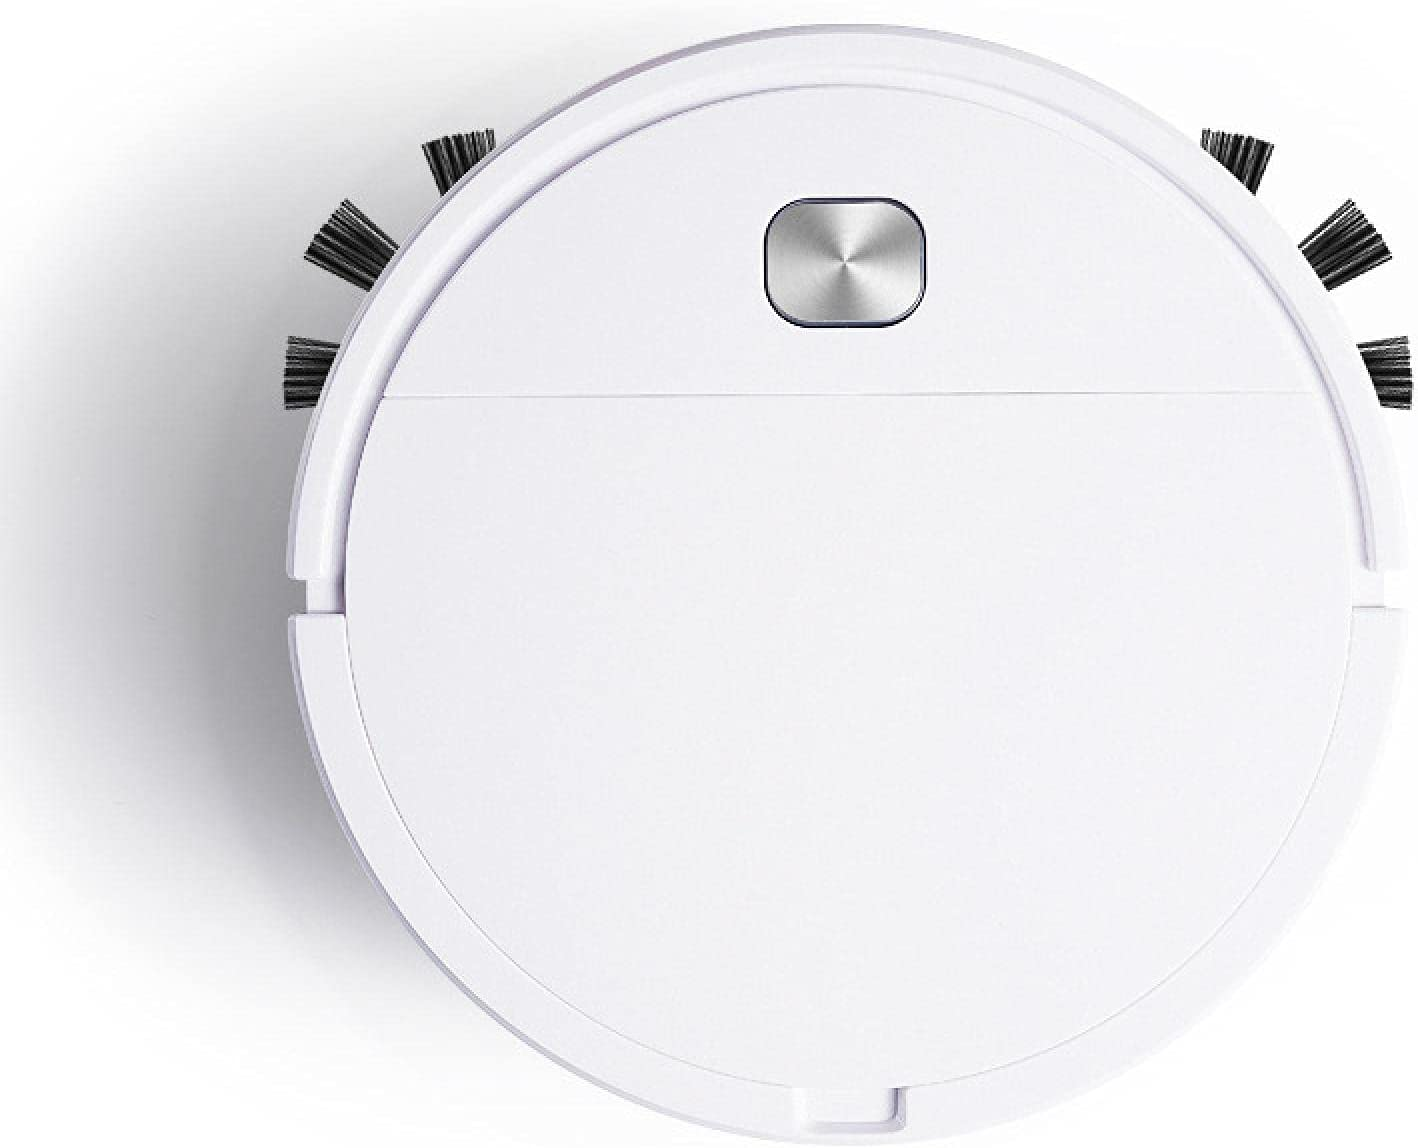 Smart Sweeping Robot Vacuuming USB Max 73% OFF Vacuum Cleaner Swee National products Charging